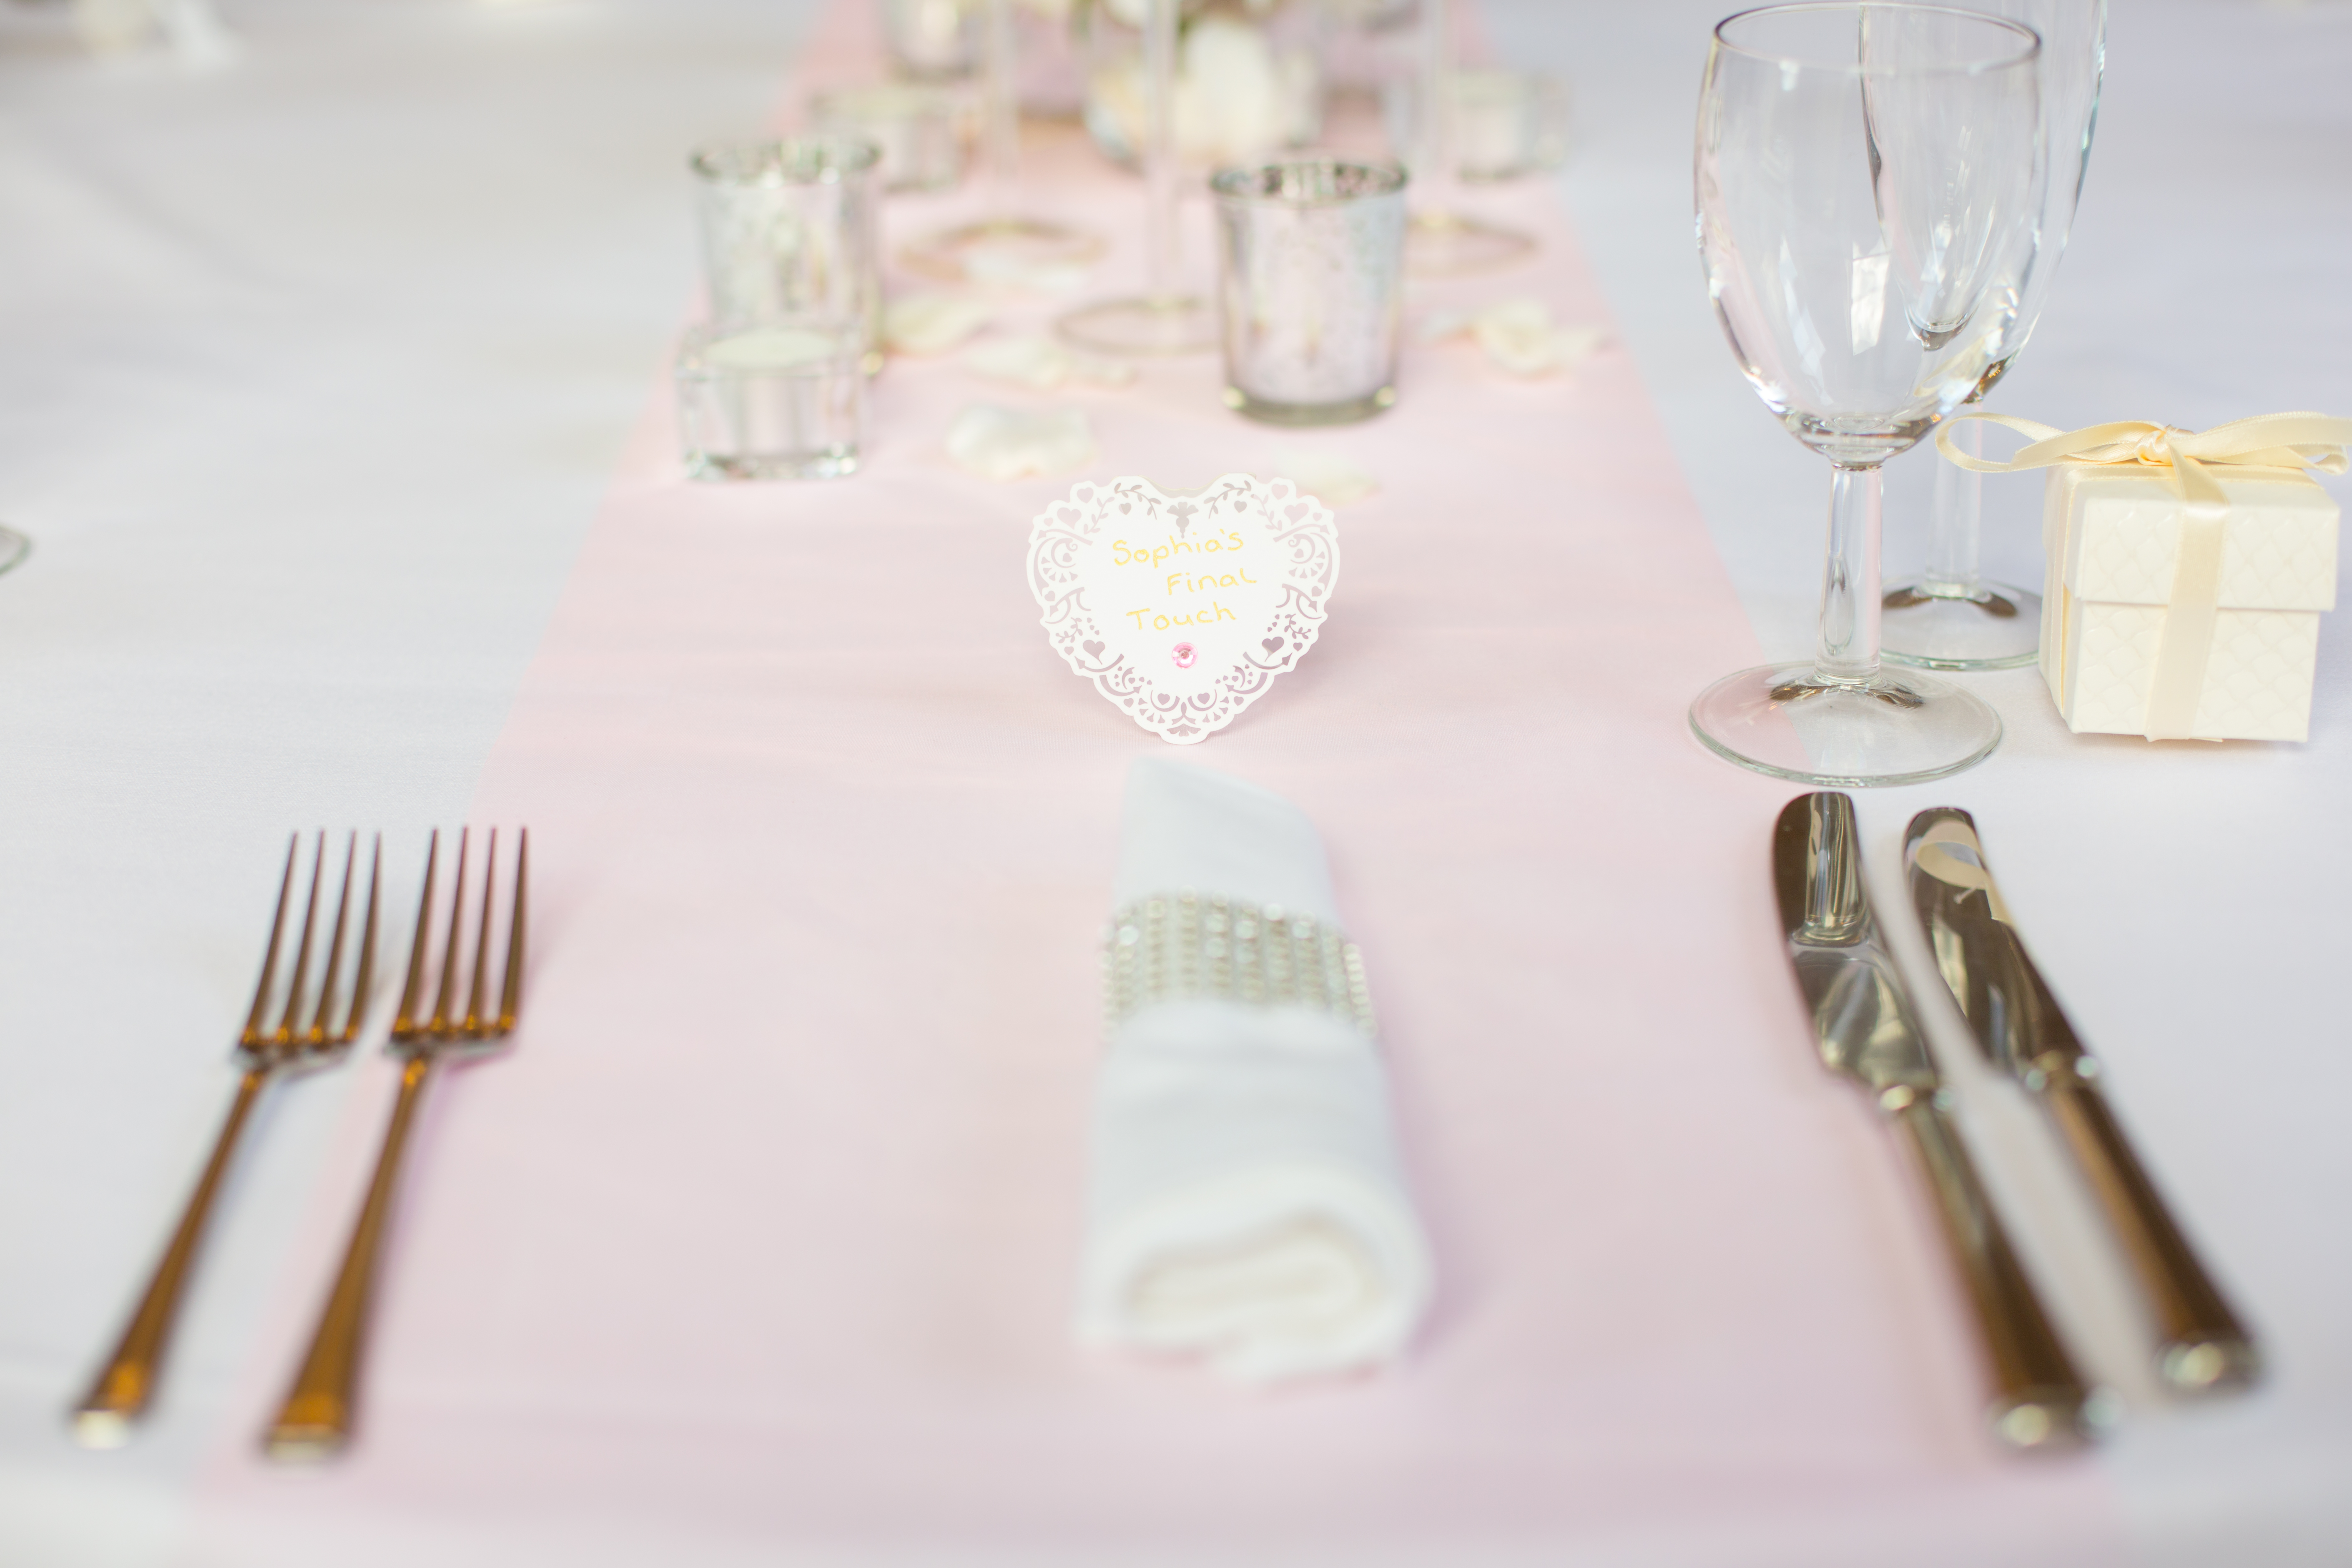 Diamante Napkin Rings  - Sophia's Final Touch - Venue Styling - Weddings & Event Decoration